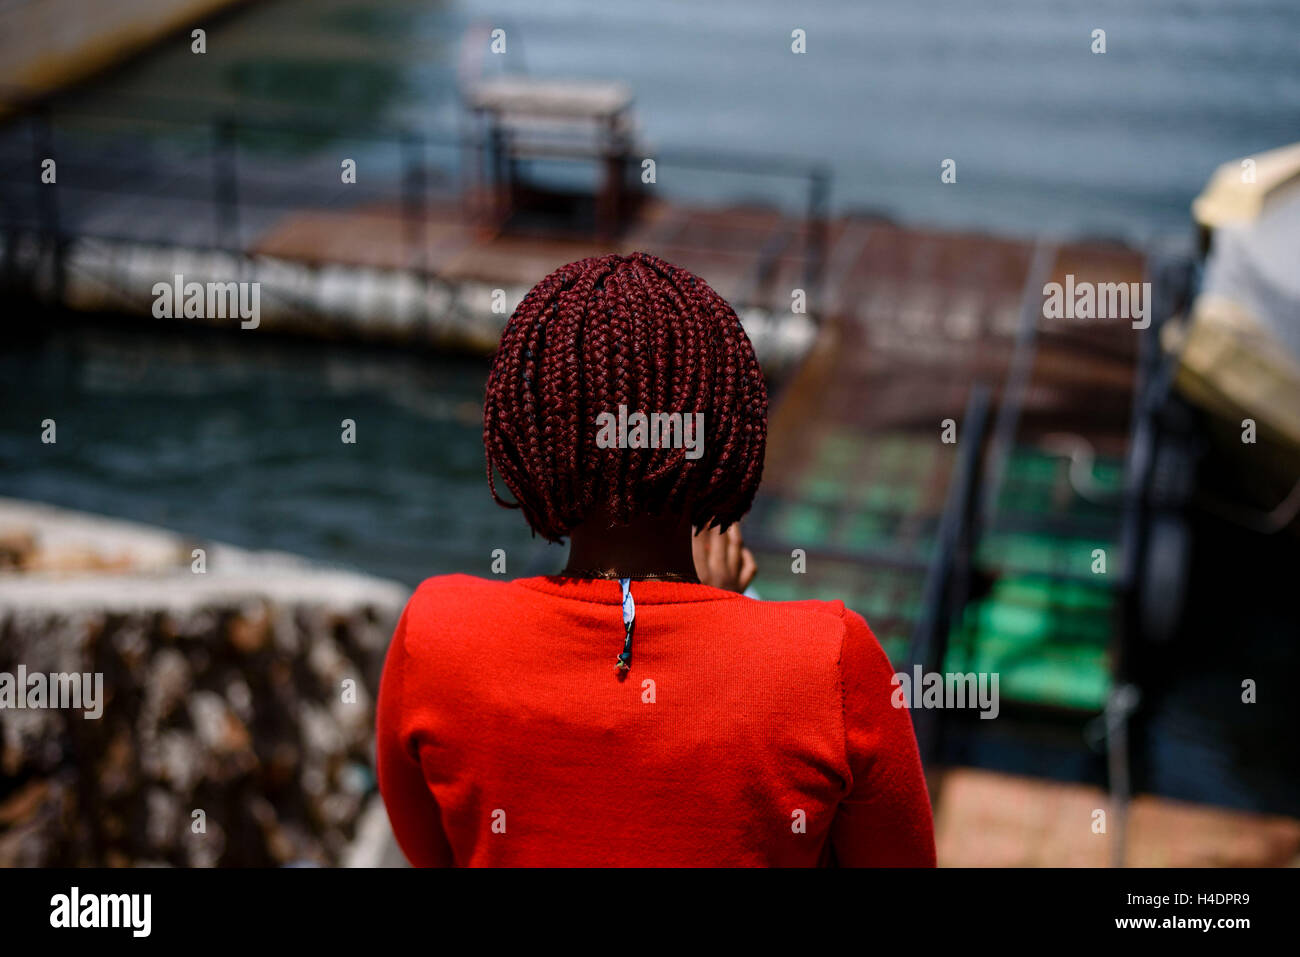 An African woman with creative hairstyle - Stock Image